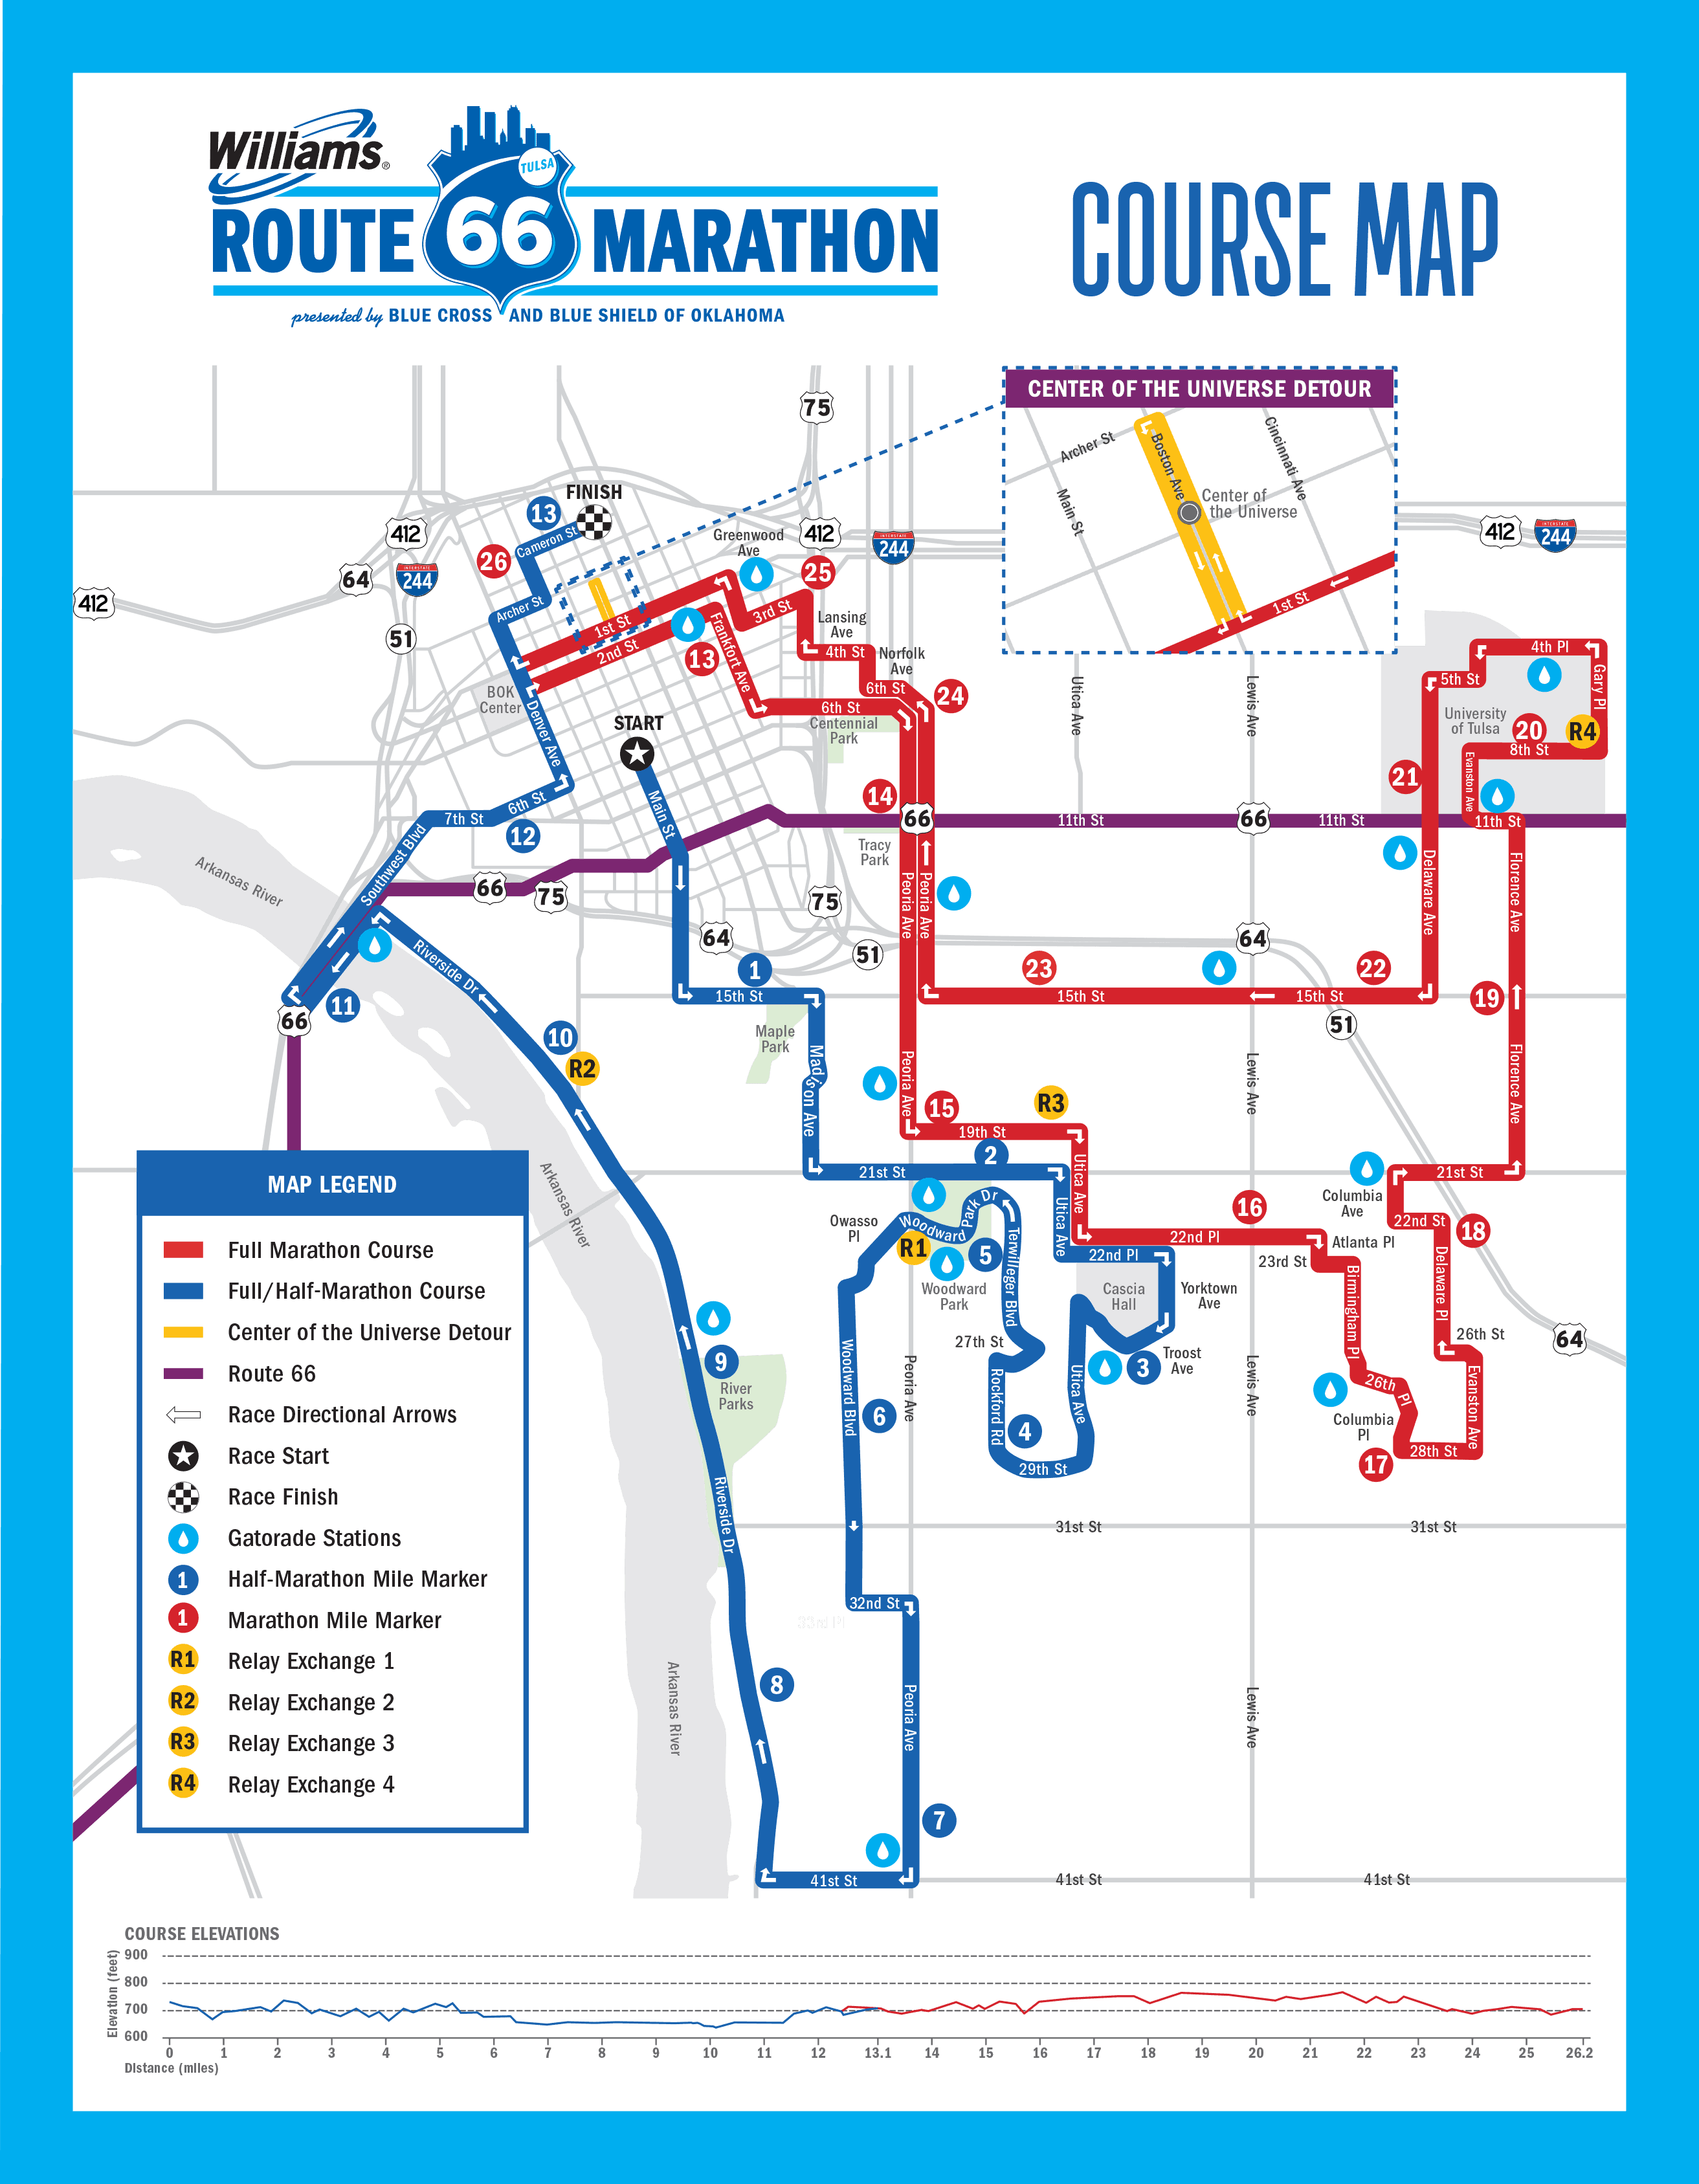 //route66marathon.com/wp-content/uploads/2019/10/map.png